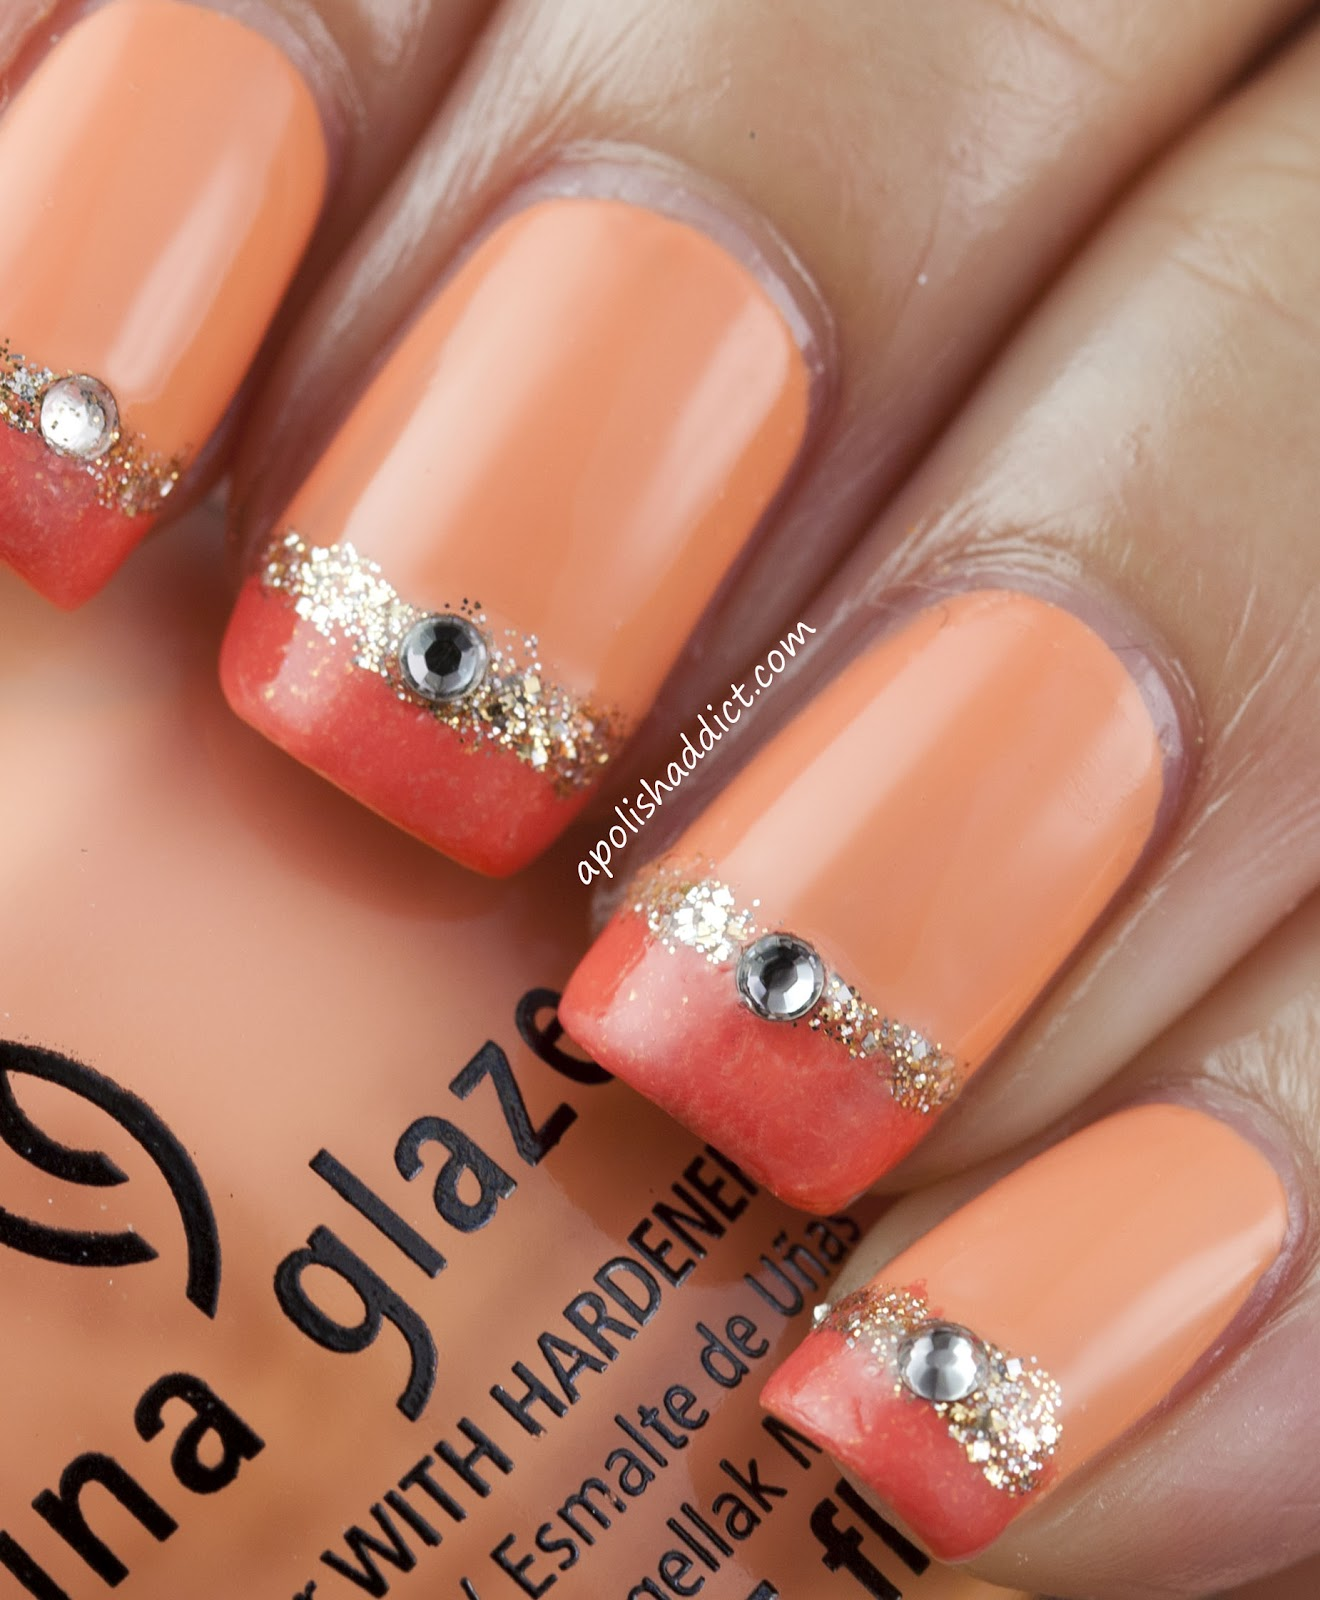 Collectionphotos 2017: Easy Nail Art Designs Pictures 2013